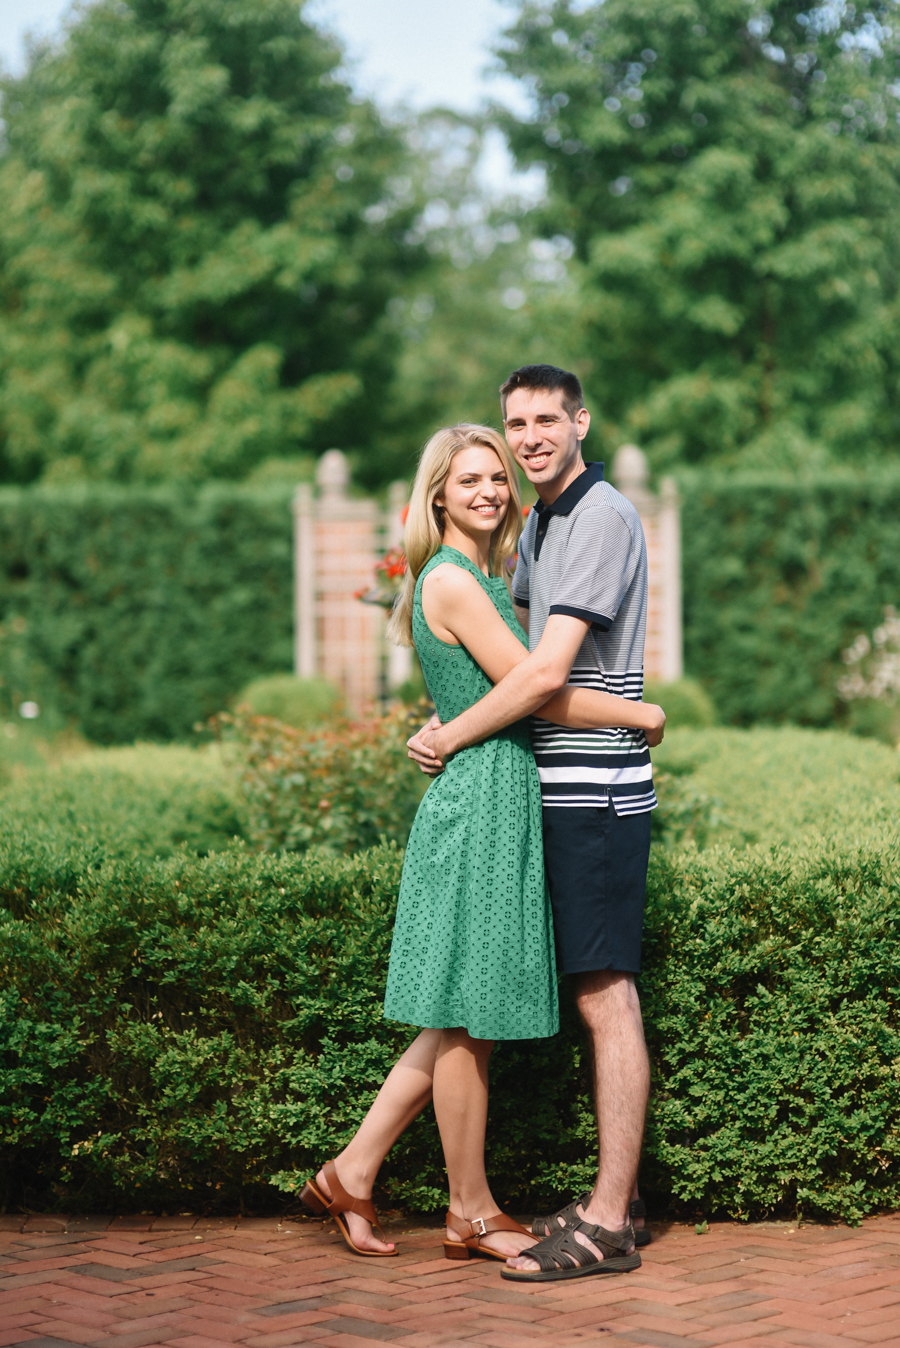 MSU_Arboretum_Engagement_Photos-4.jpg